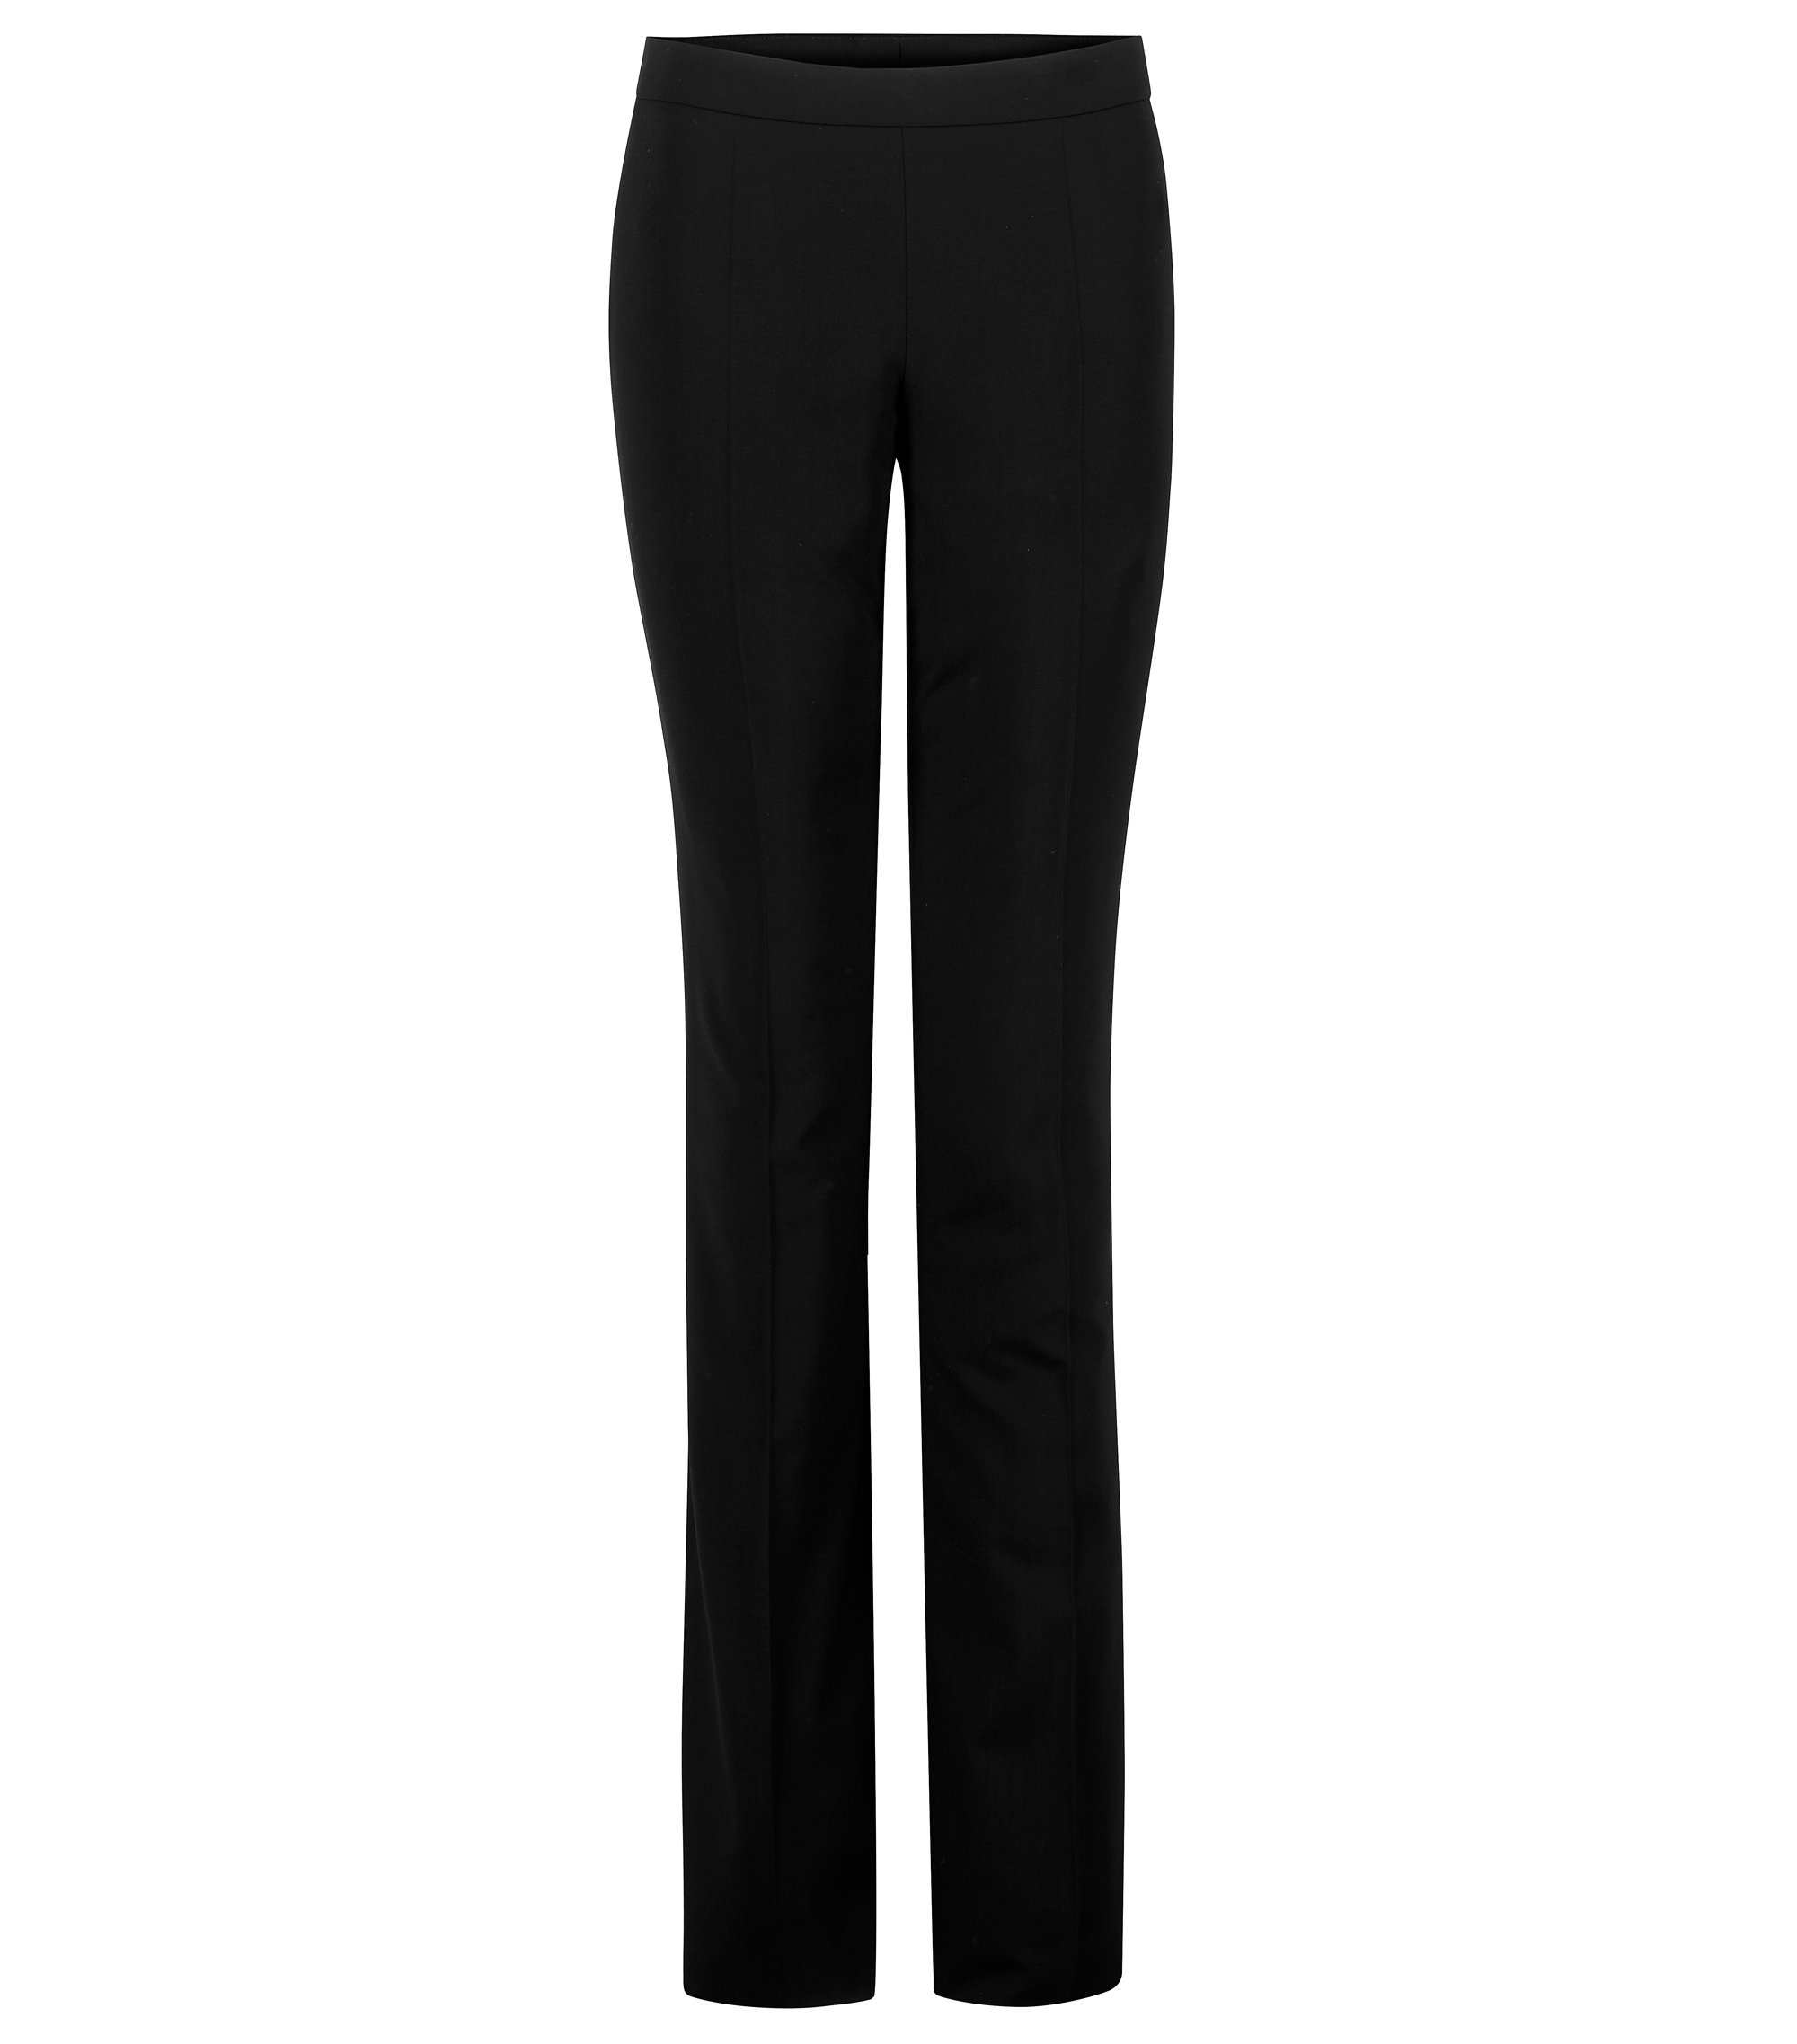 'Tulea Side Zip' | Stretch Virgin Wool Dress Pants, Black